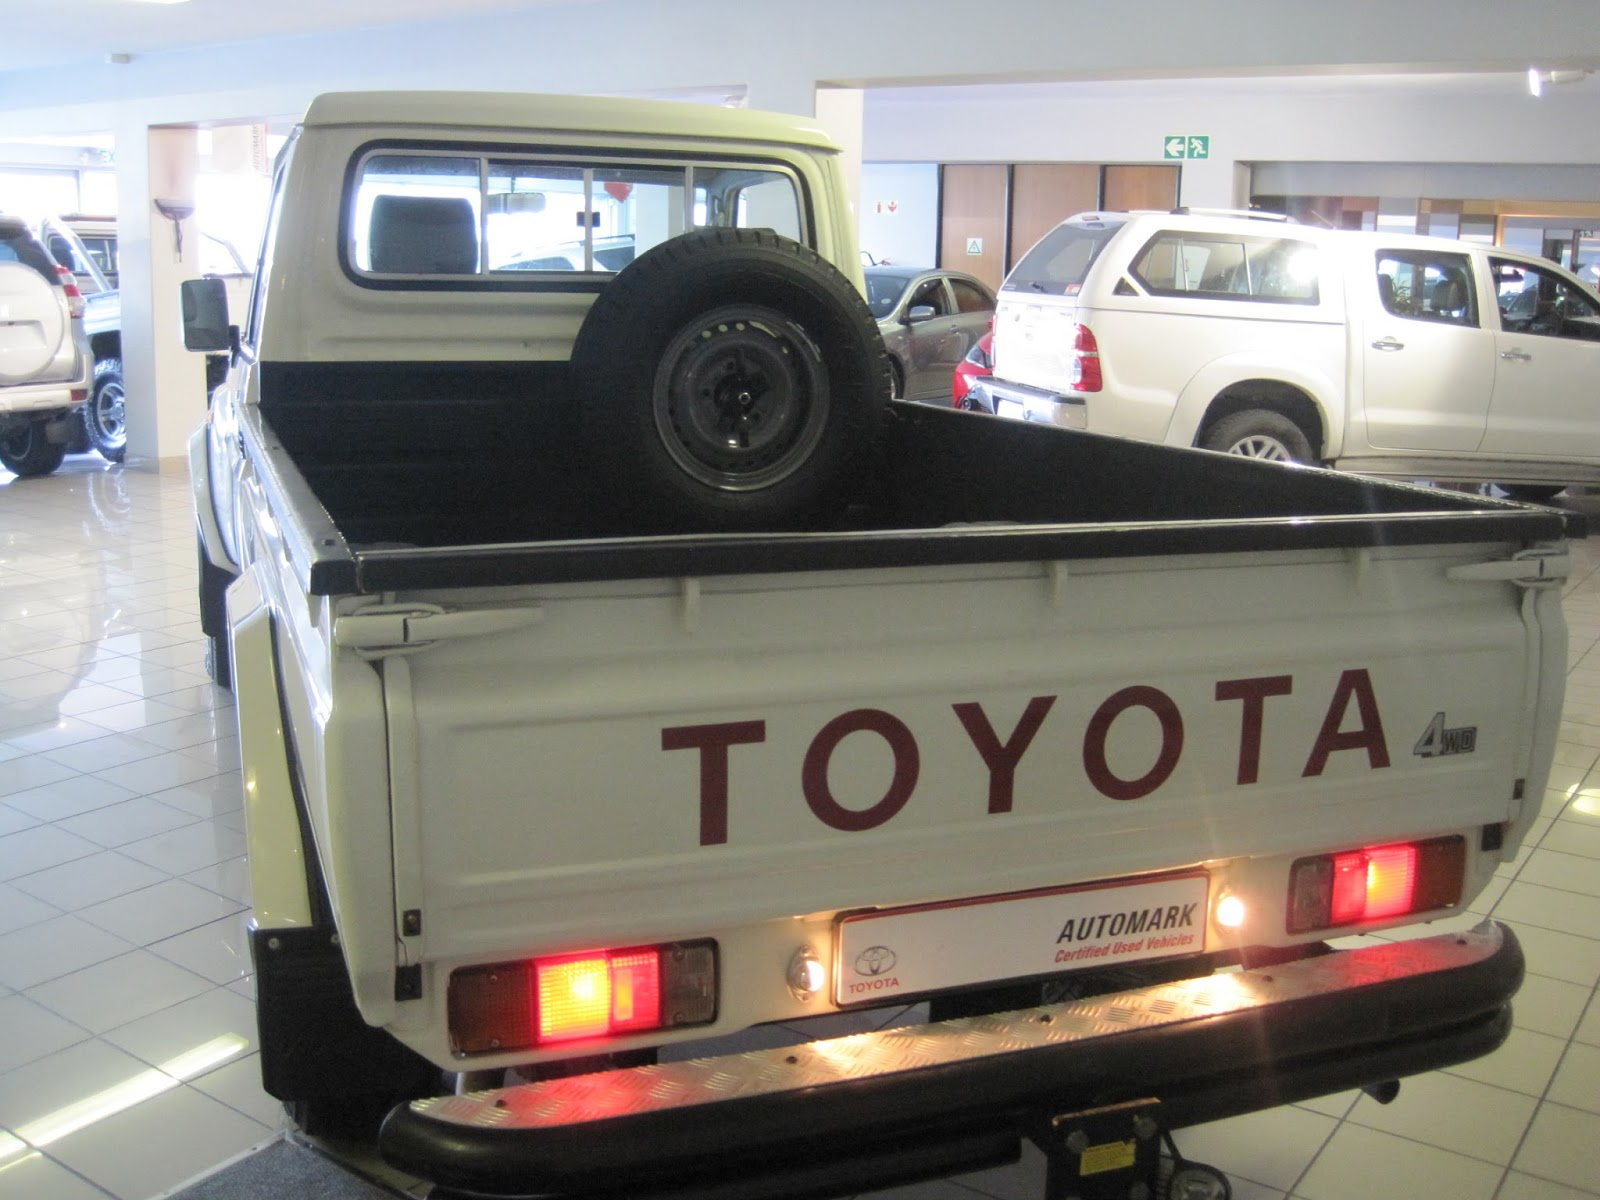 gumtree cape olx town cars for sale used vehicles for sale cars bakkies in